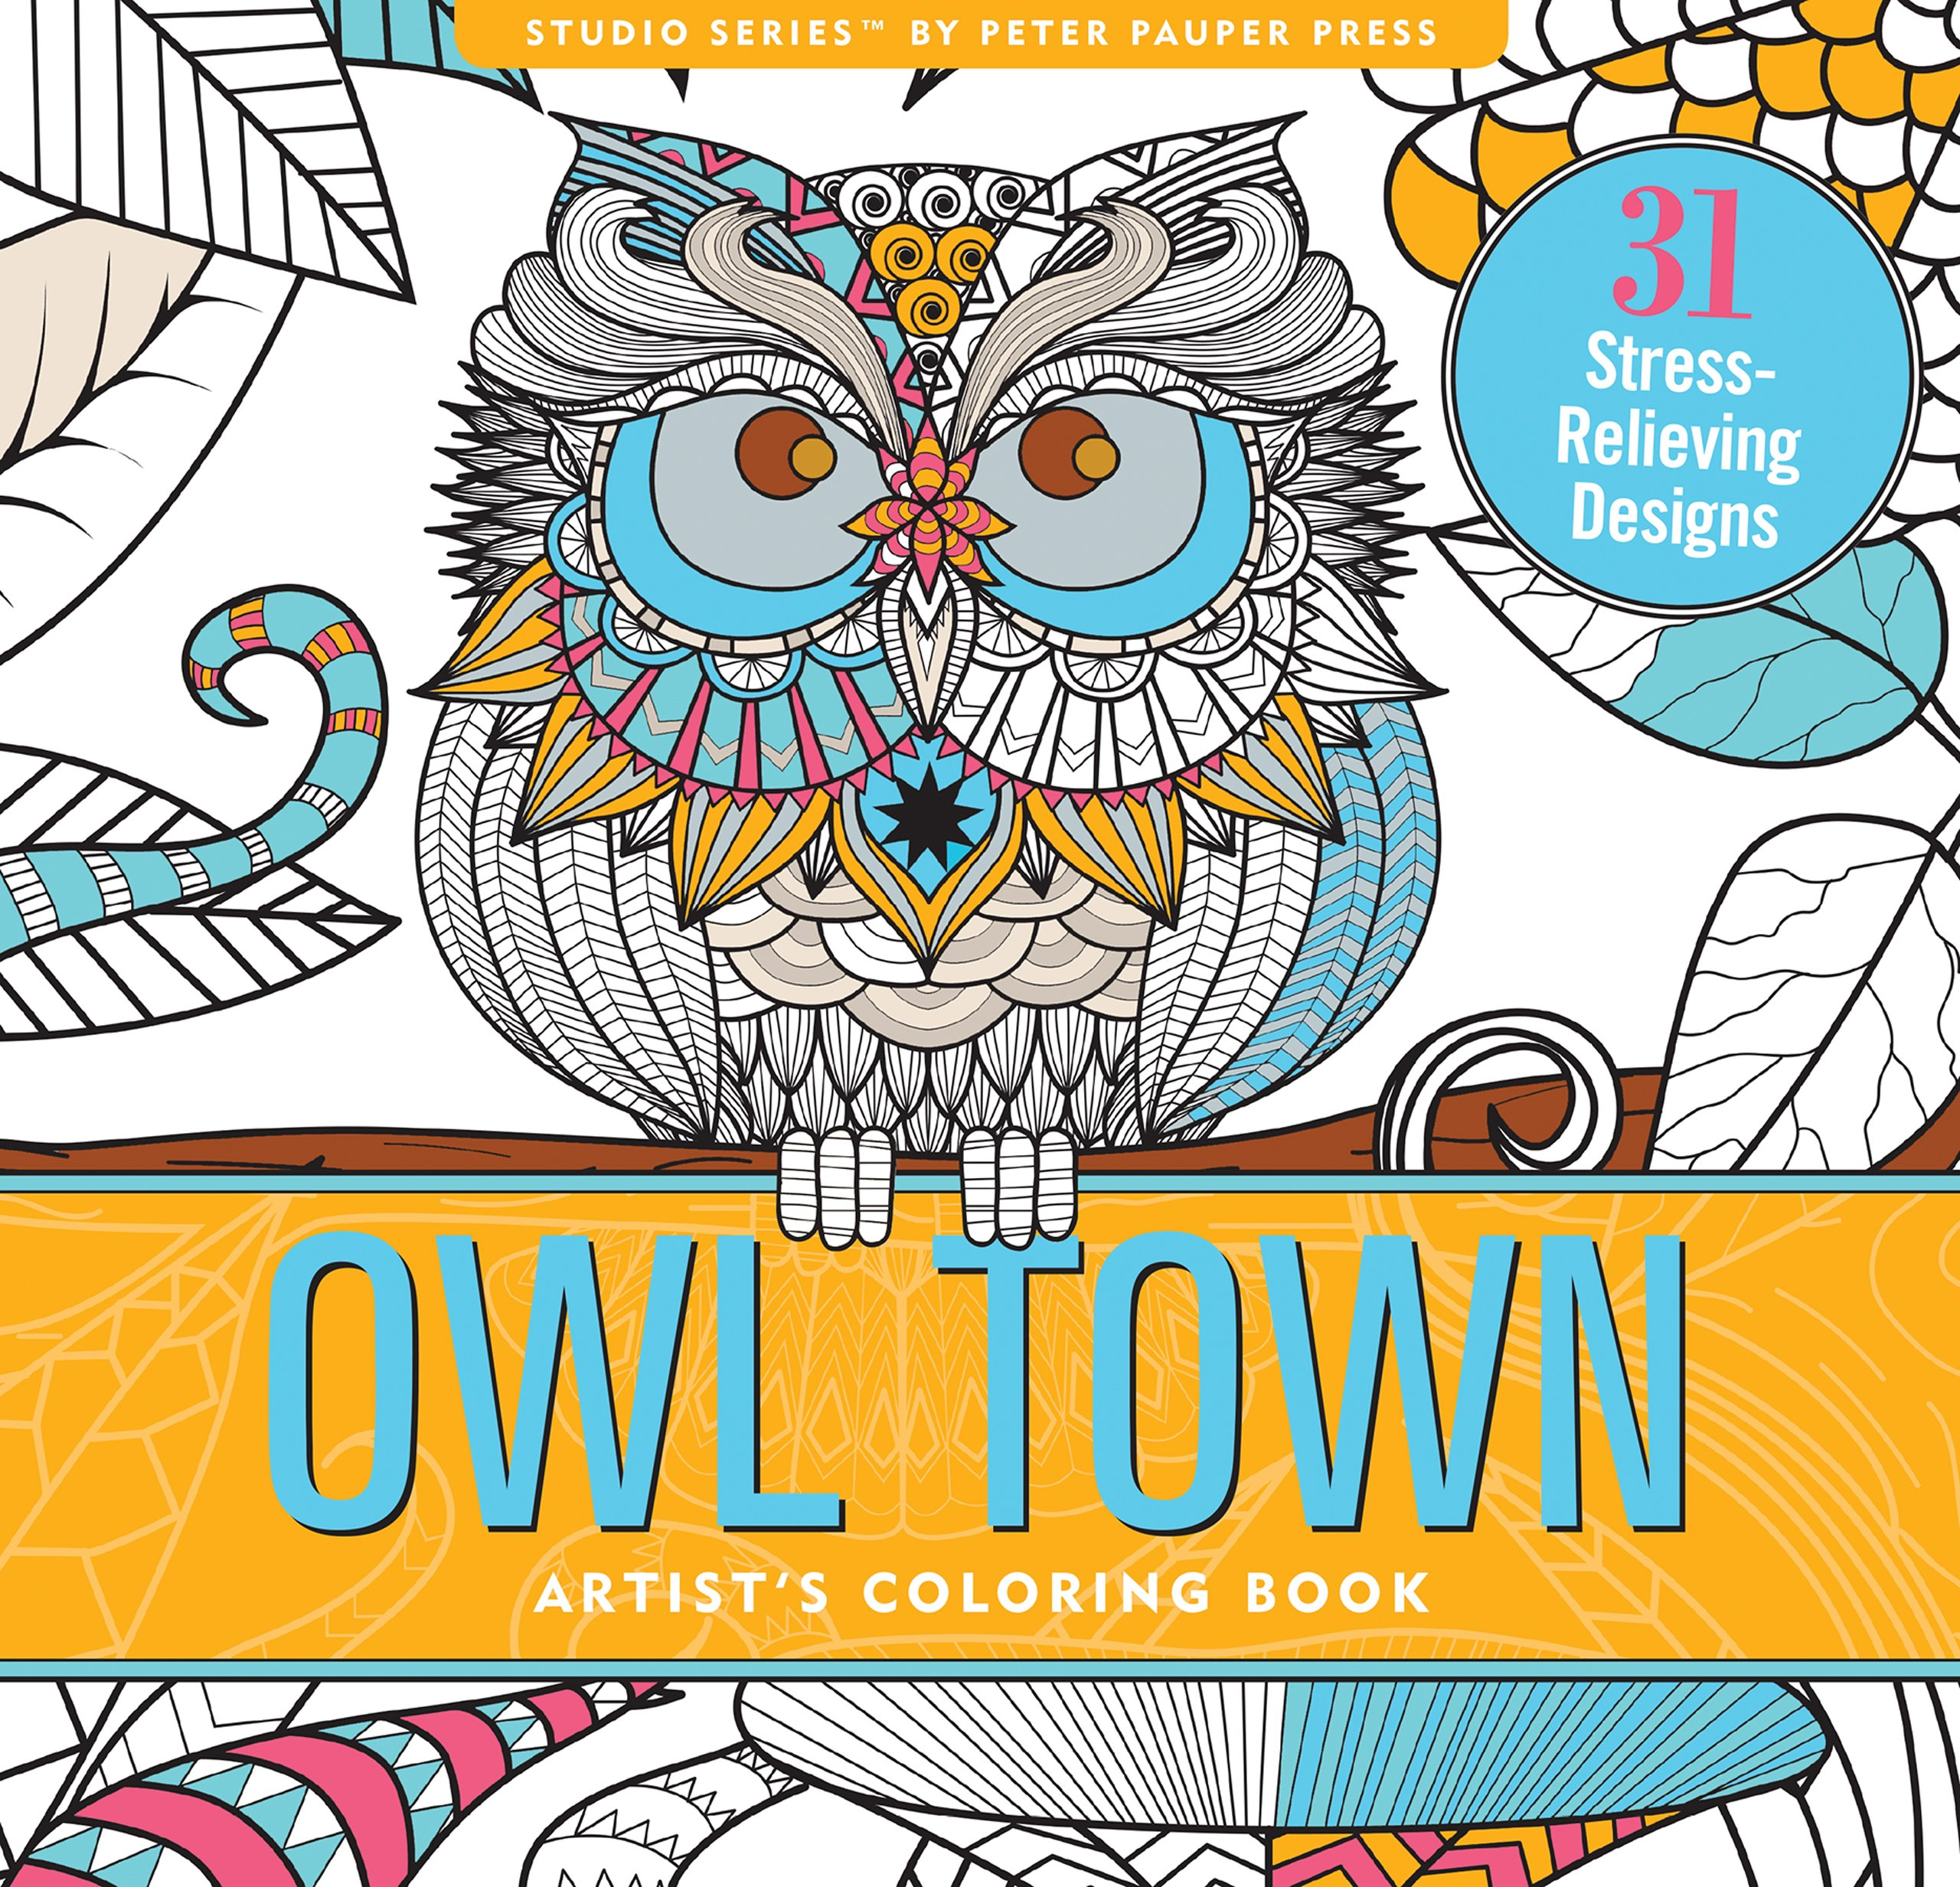 Stress coloring books - Amazon Com Owl Town Adult Coloring Book 31 Stress Relieving Designs Studio Series 9781441321213 Peter Pauper Press Books